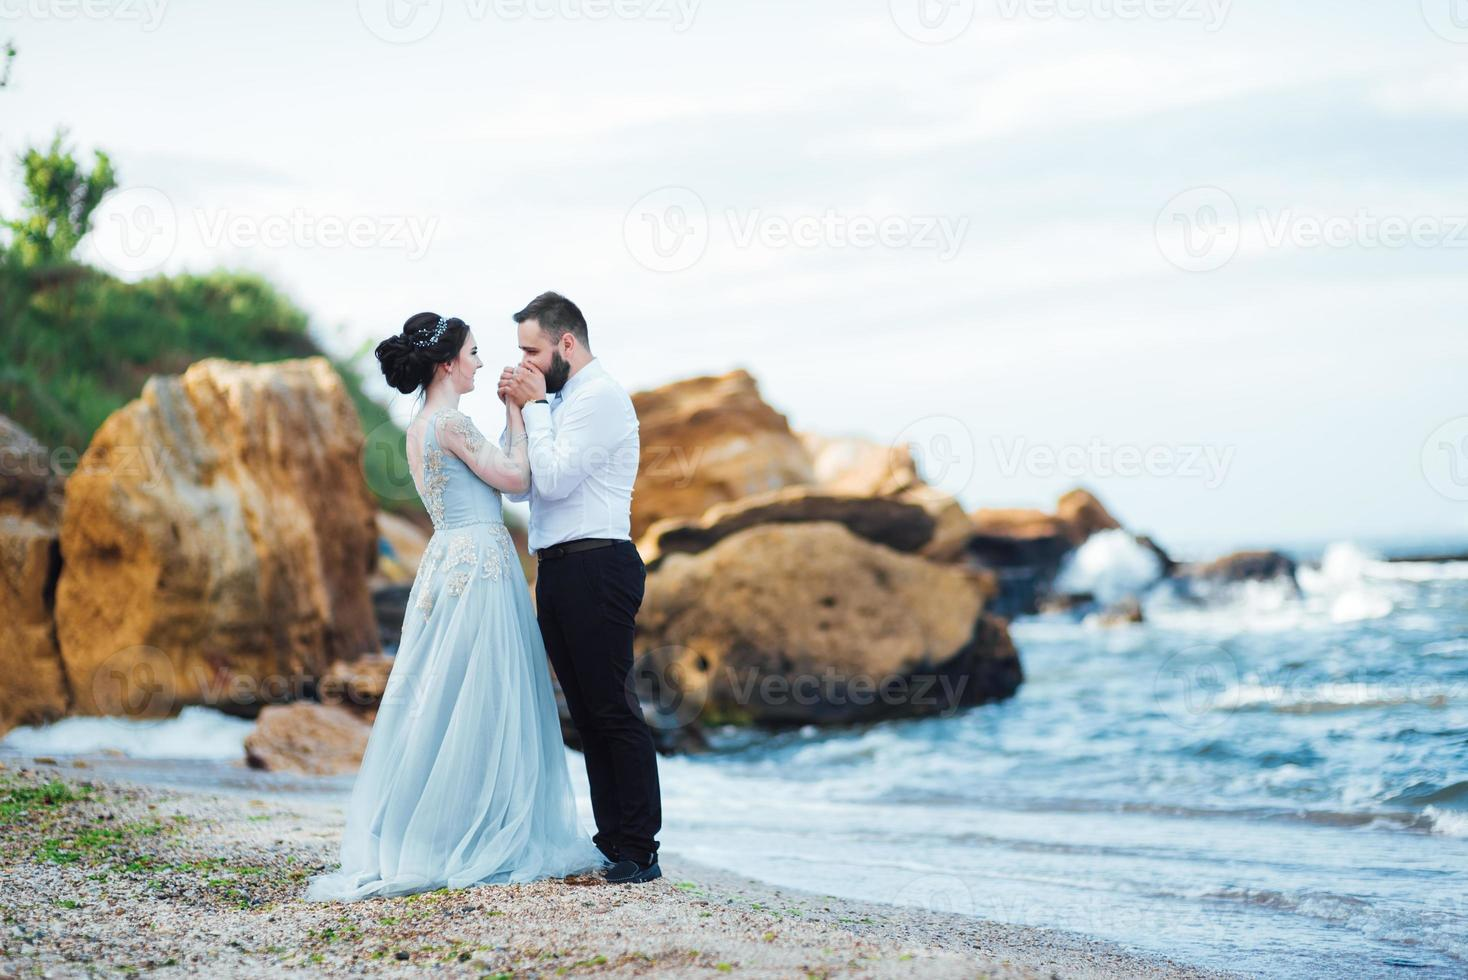 same couple with a bride in a blue dress walk photo